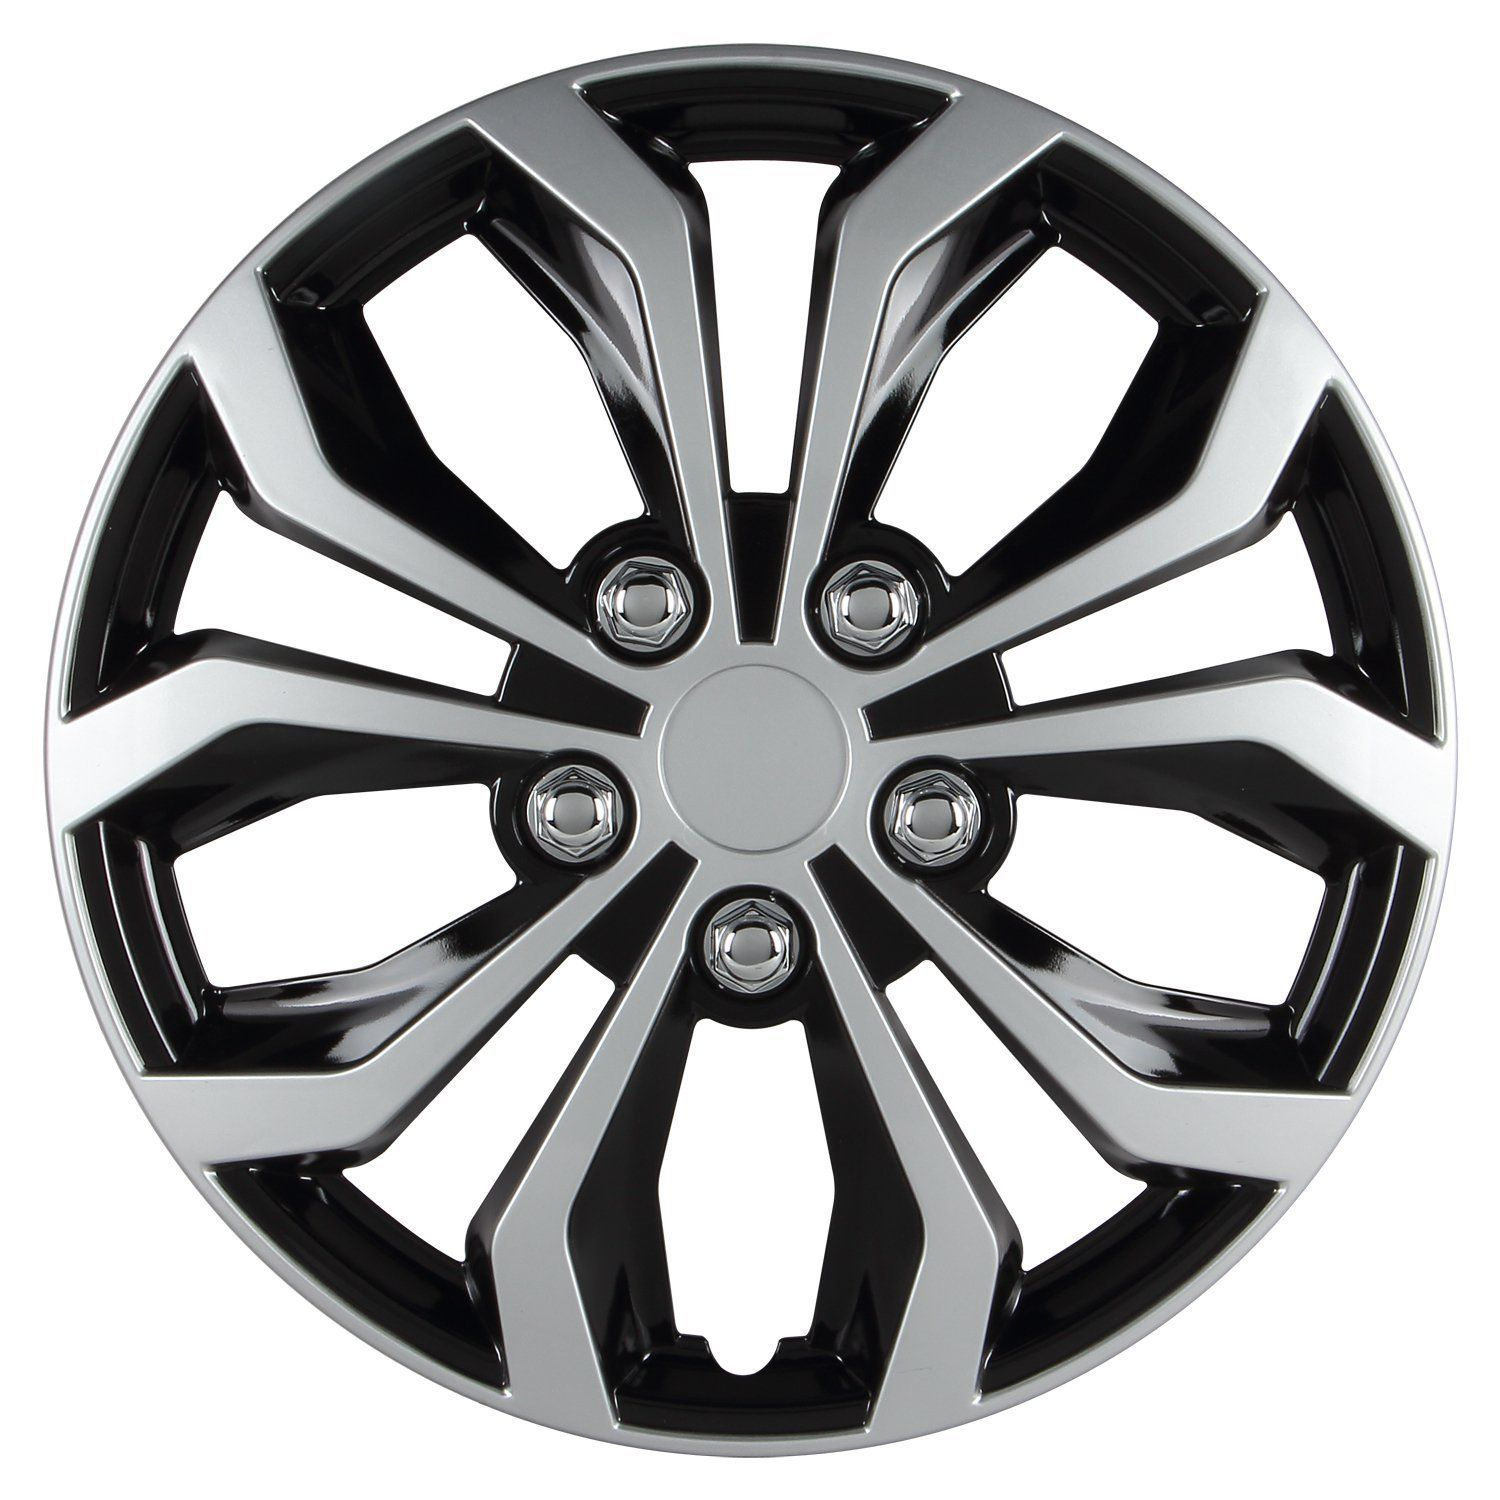 Hubcap, Black And Silver Finish Universal Spyder